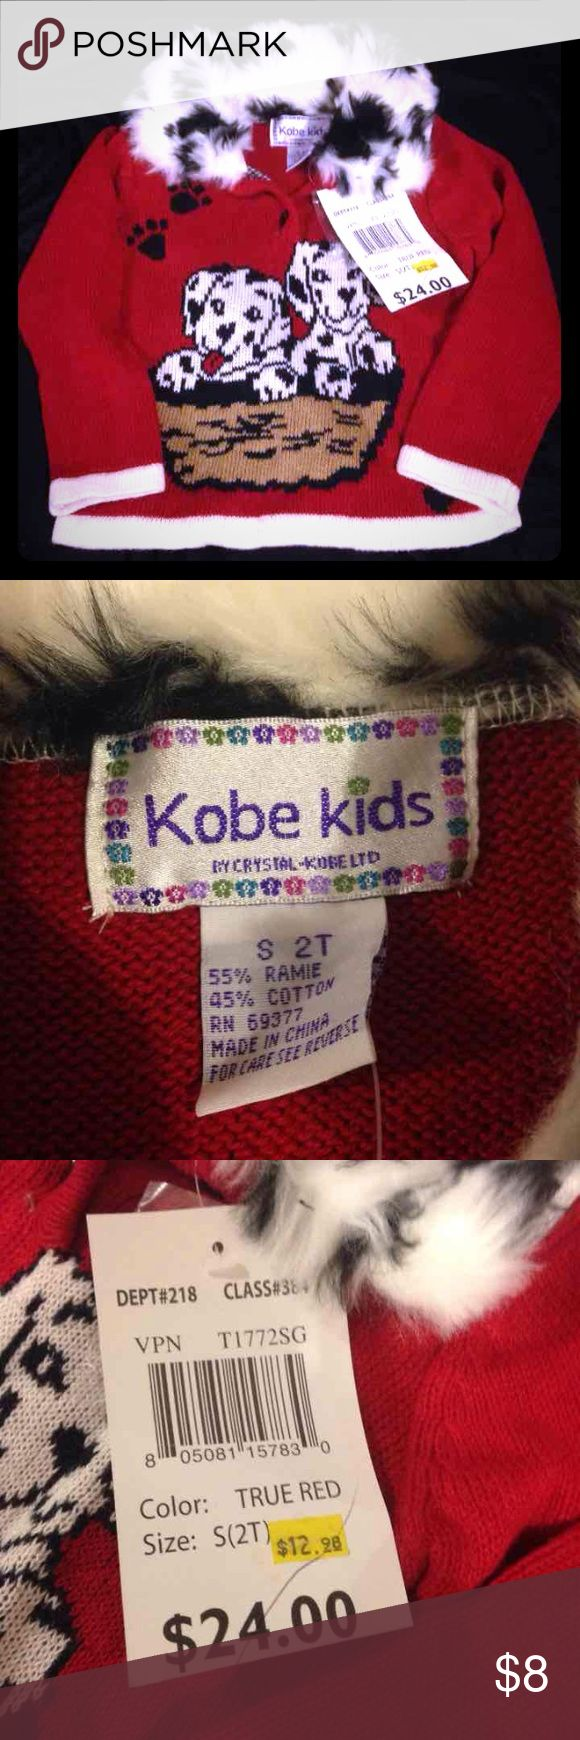 Kobe Kids Top Kobe Kids. Brand new. Add to another purchase and avoid additional shipping fees. Kobe Kids Shirts & Tops Sweaters